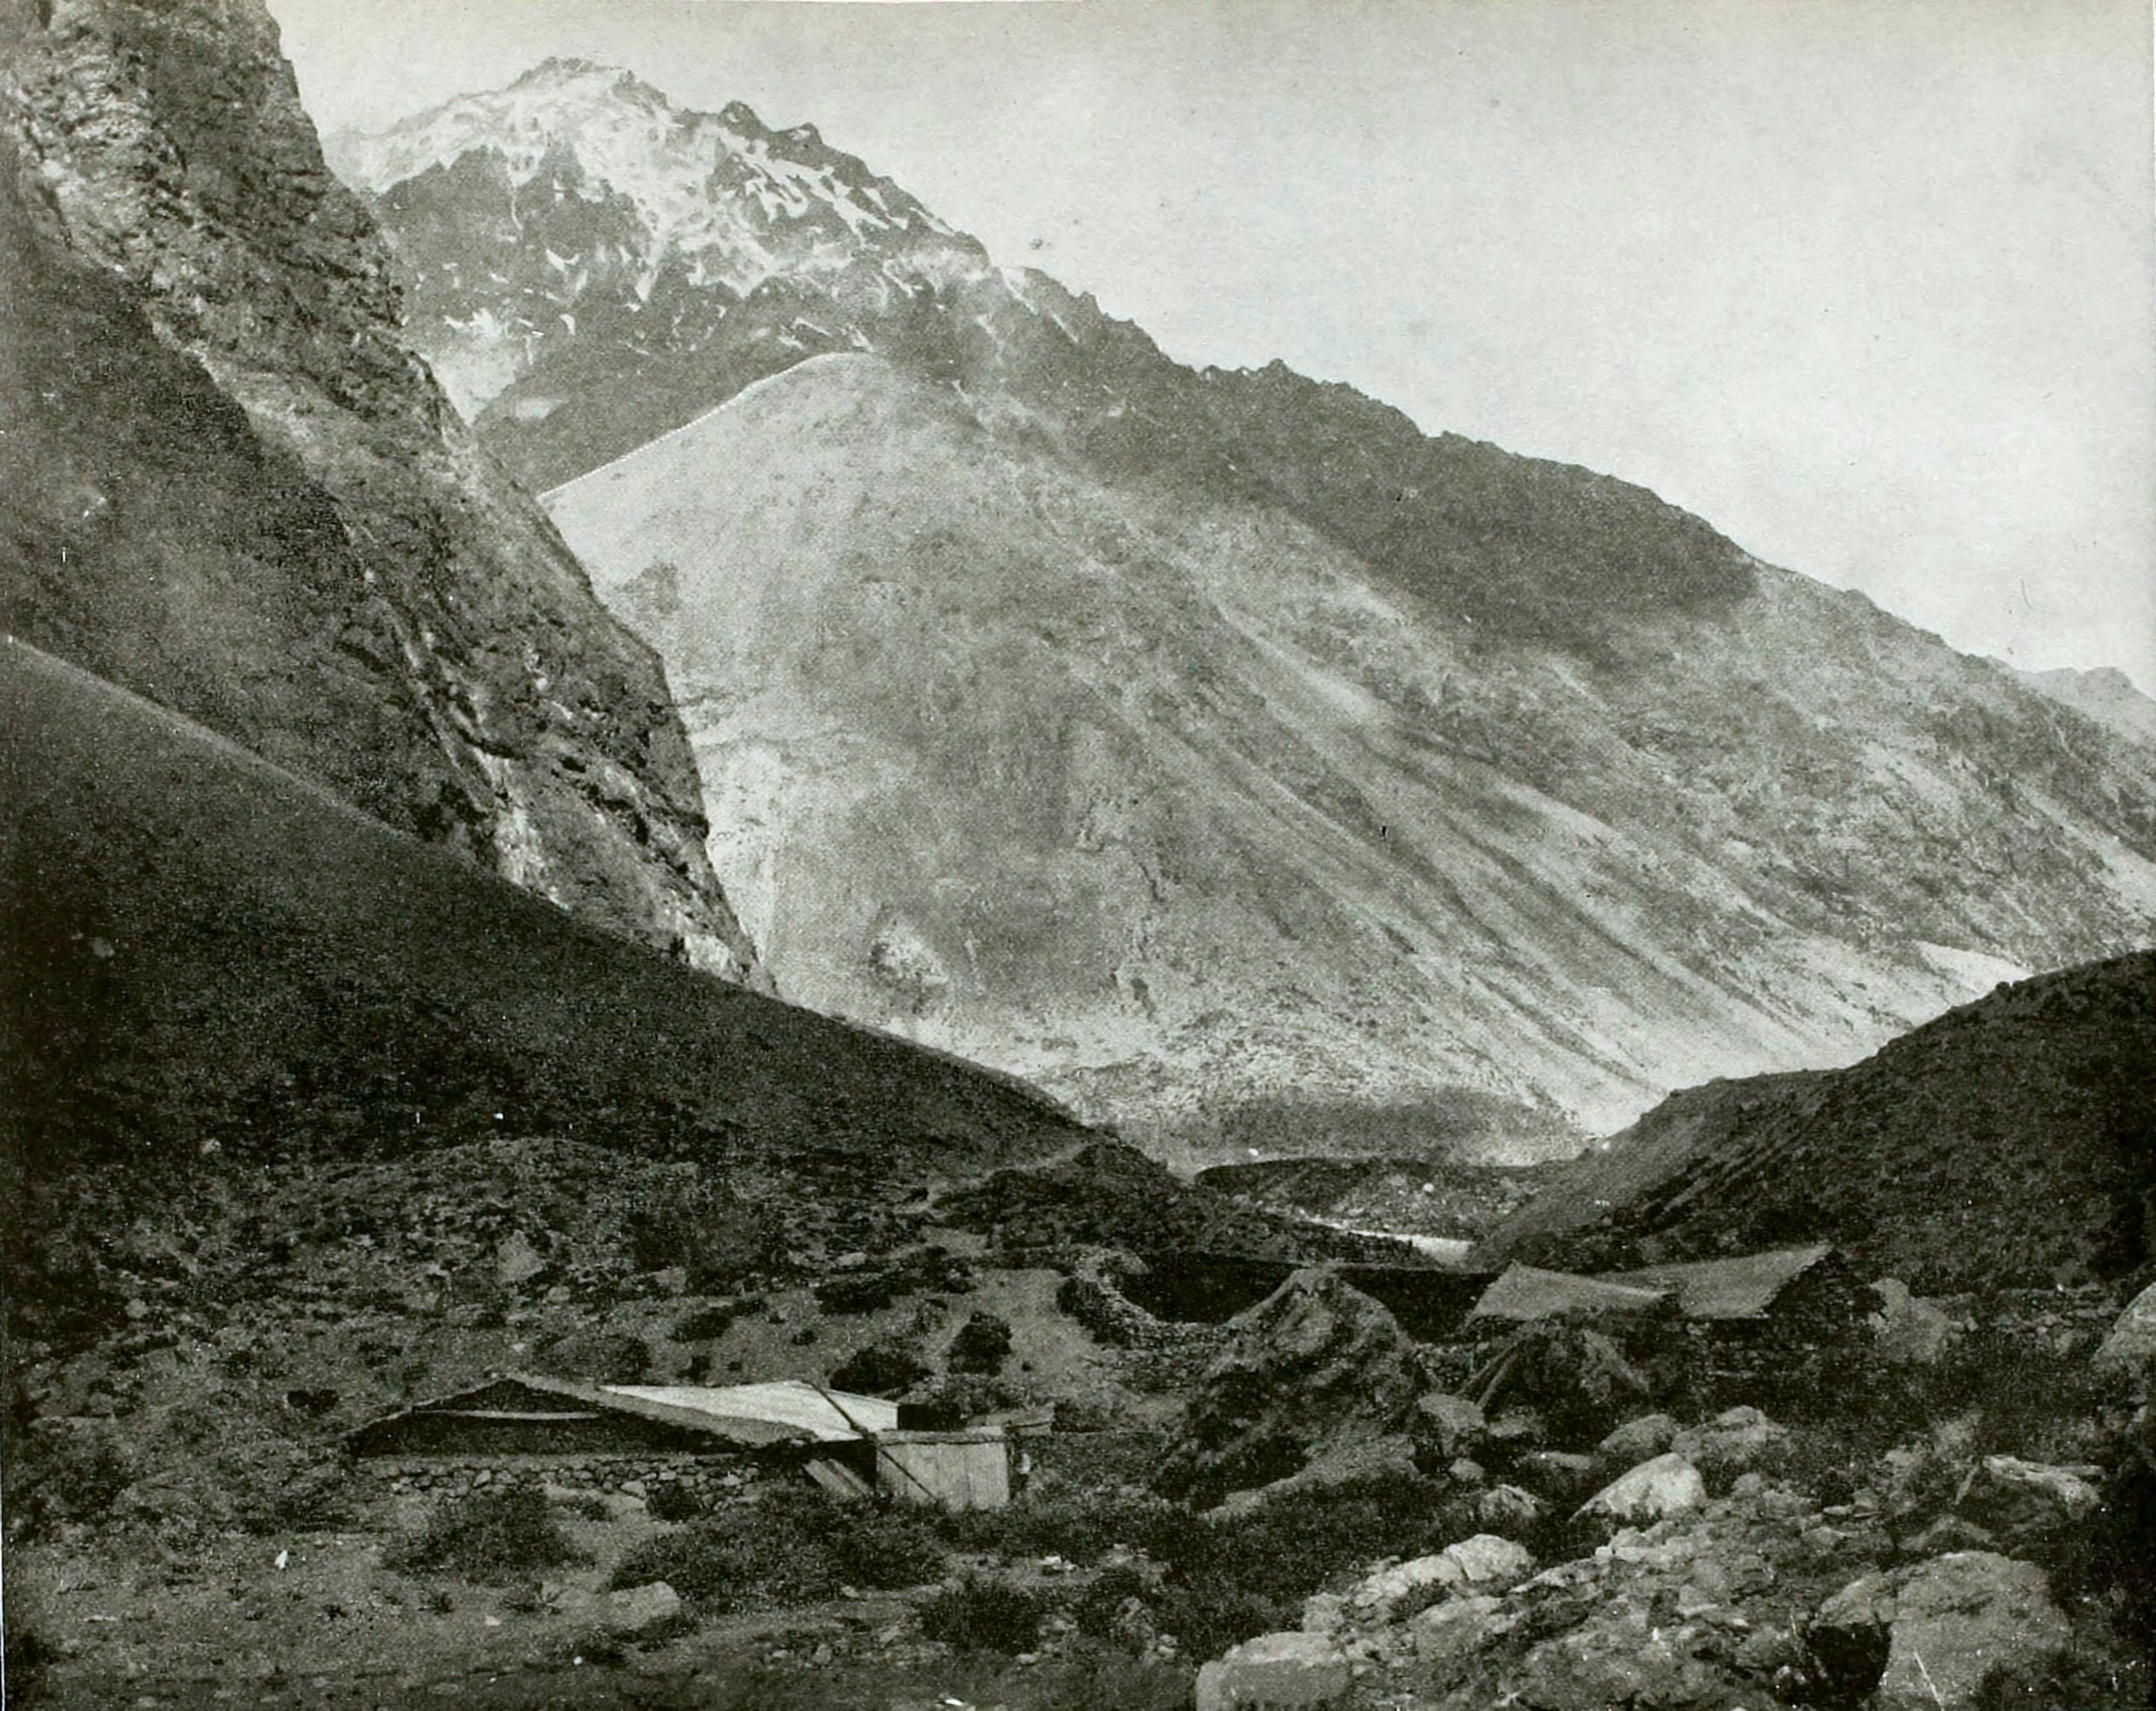 Uspallata Pass, Andes Mountains, Argentina – Chile about 1892